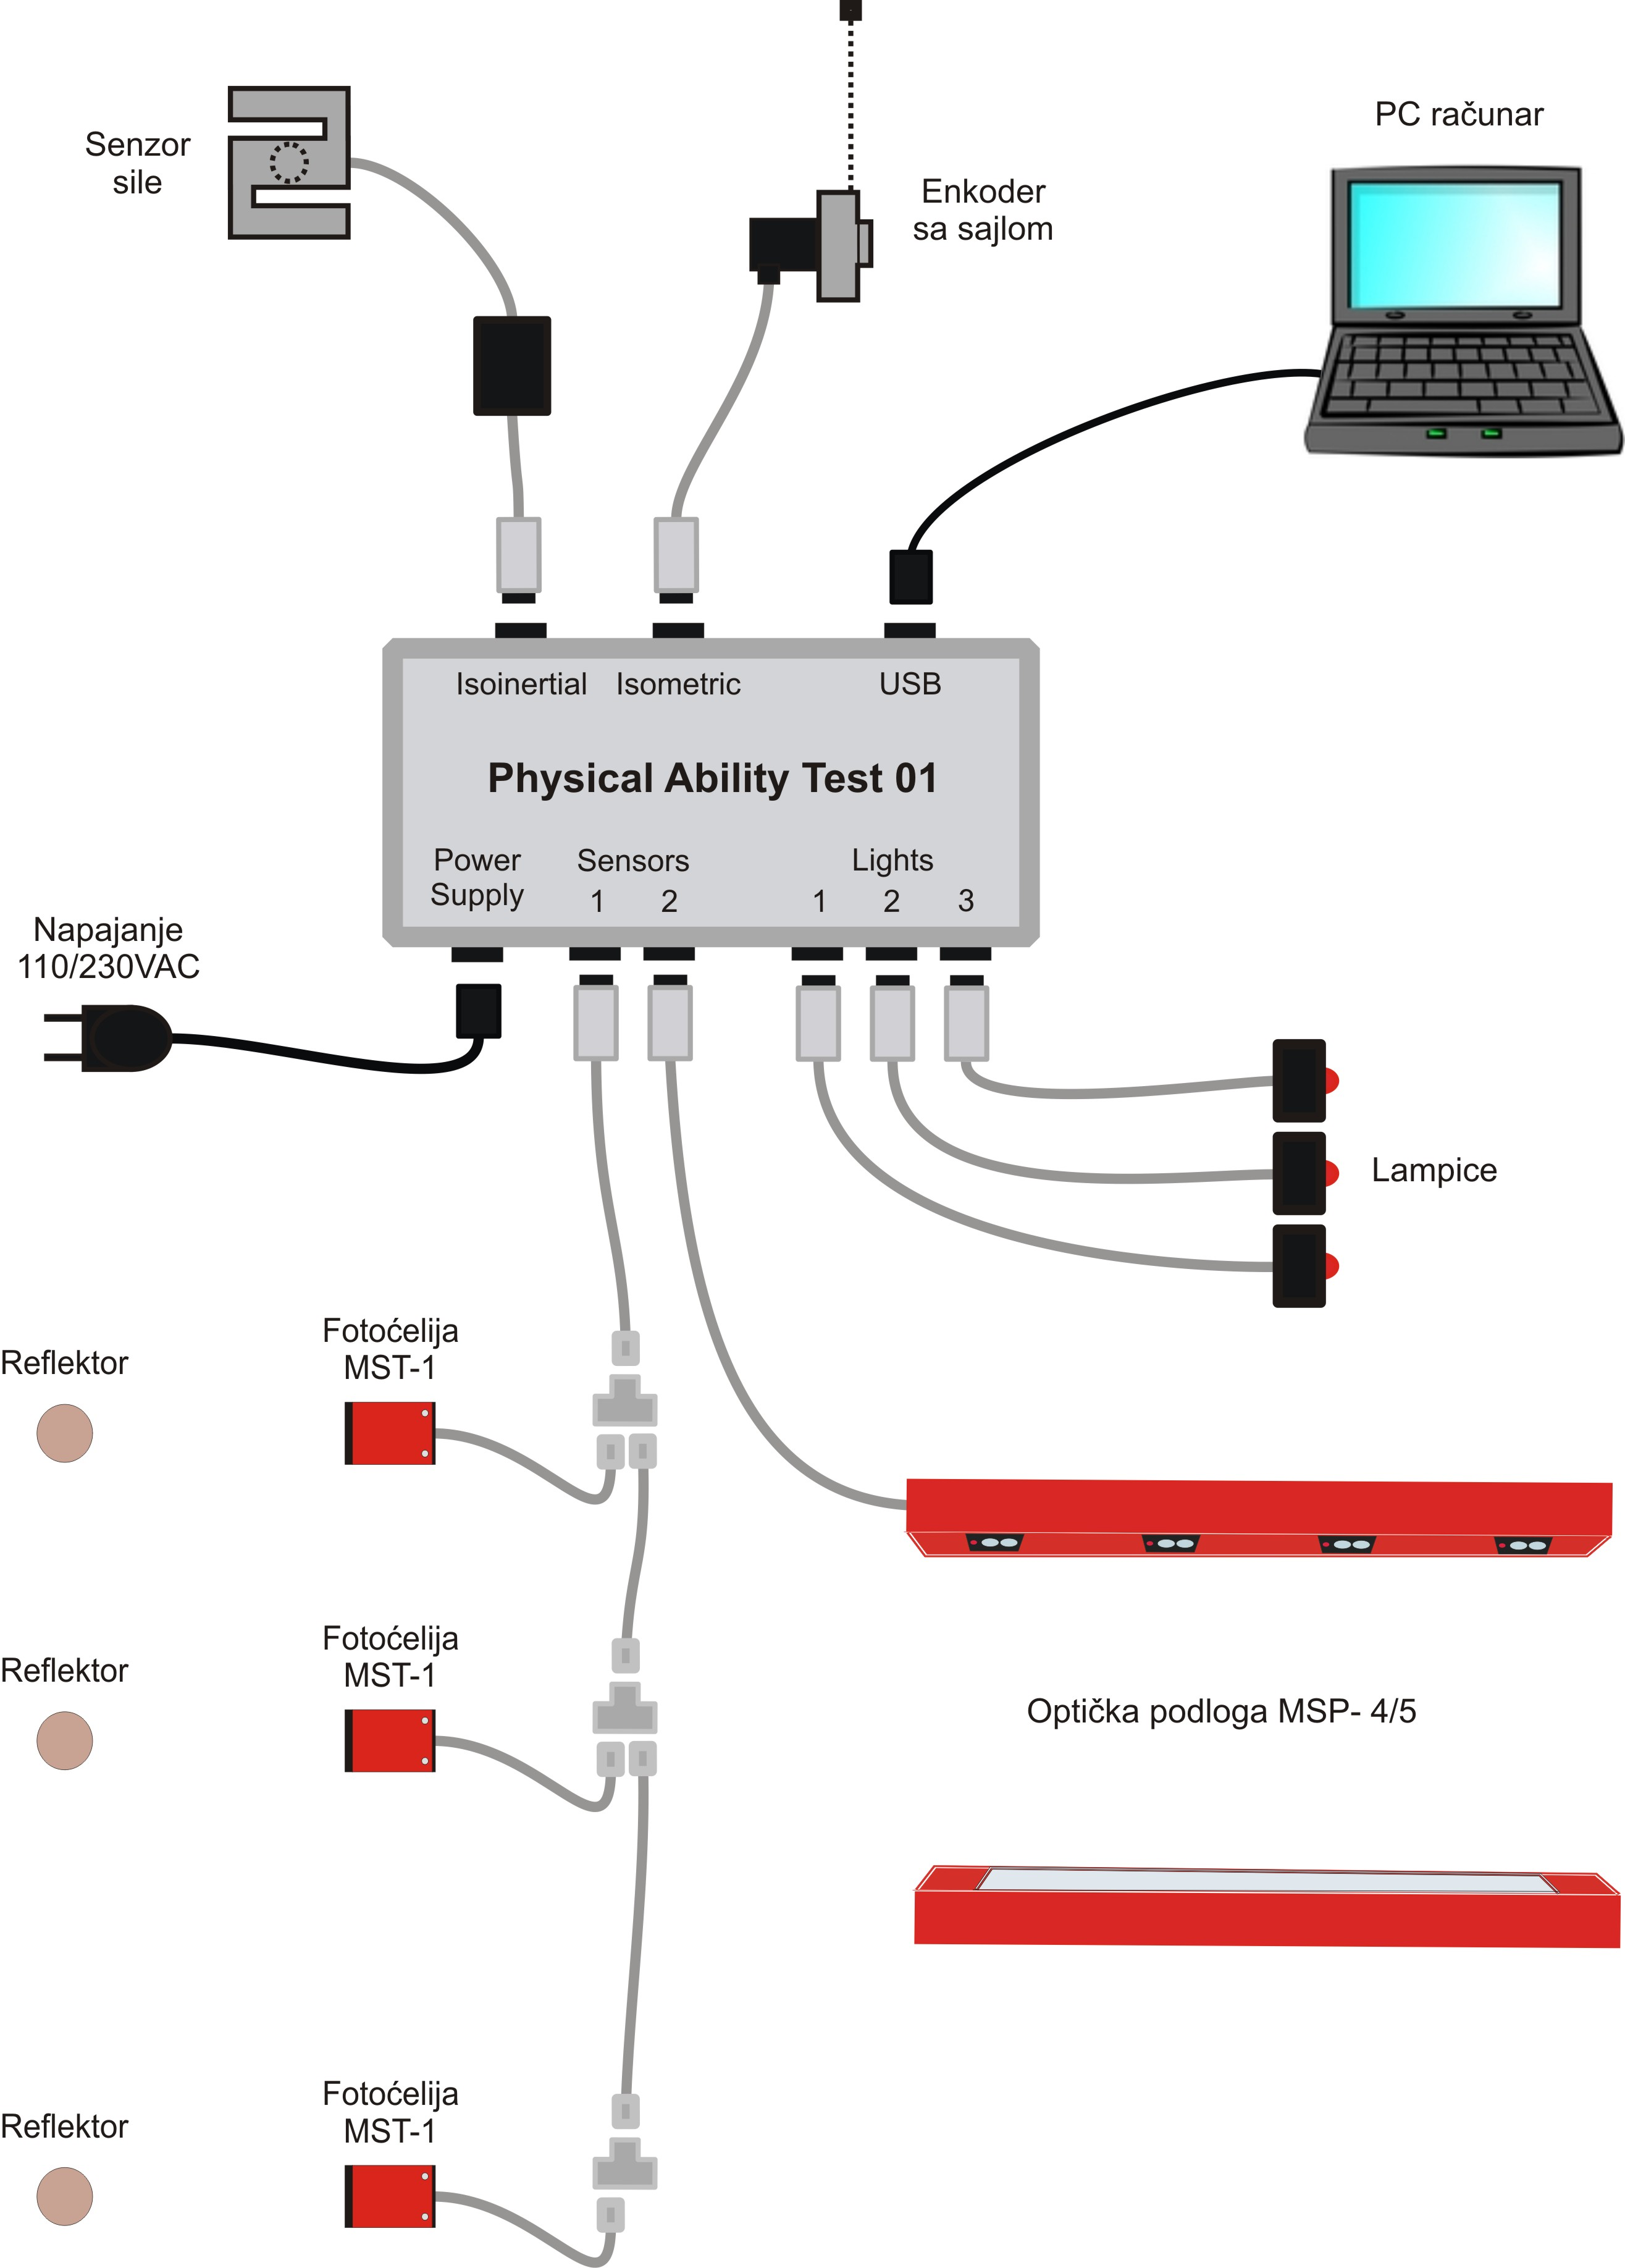 Usb 6008 Wiring Diagram Diy Diagrams For Port Using Ni Data Acquisition And Labview Physical Ability Tests Rh Sine Com Ipod Cable Apple